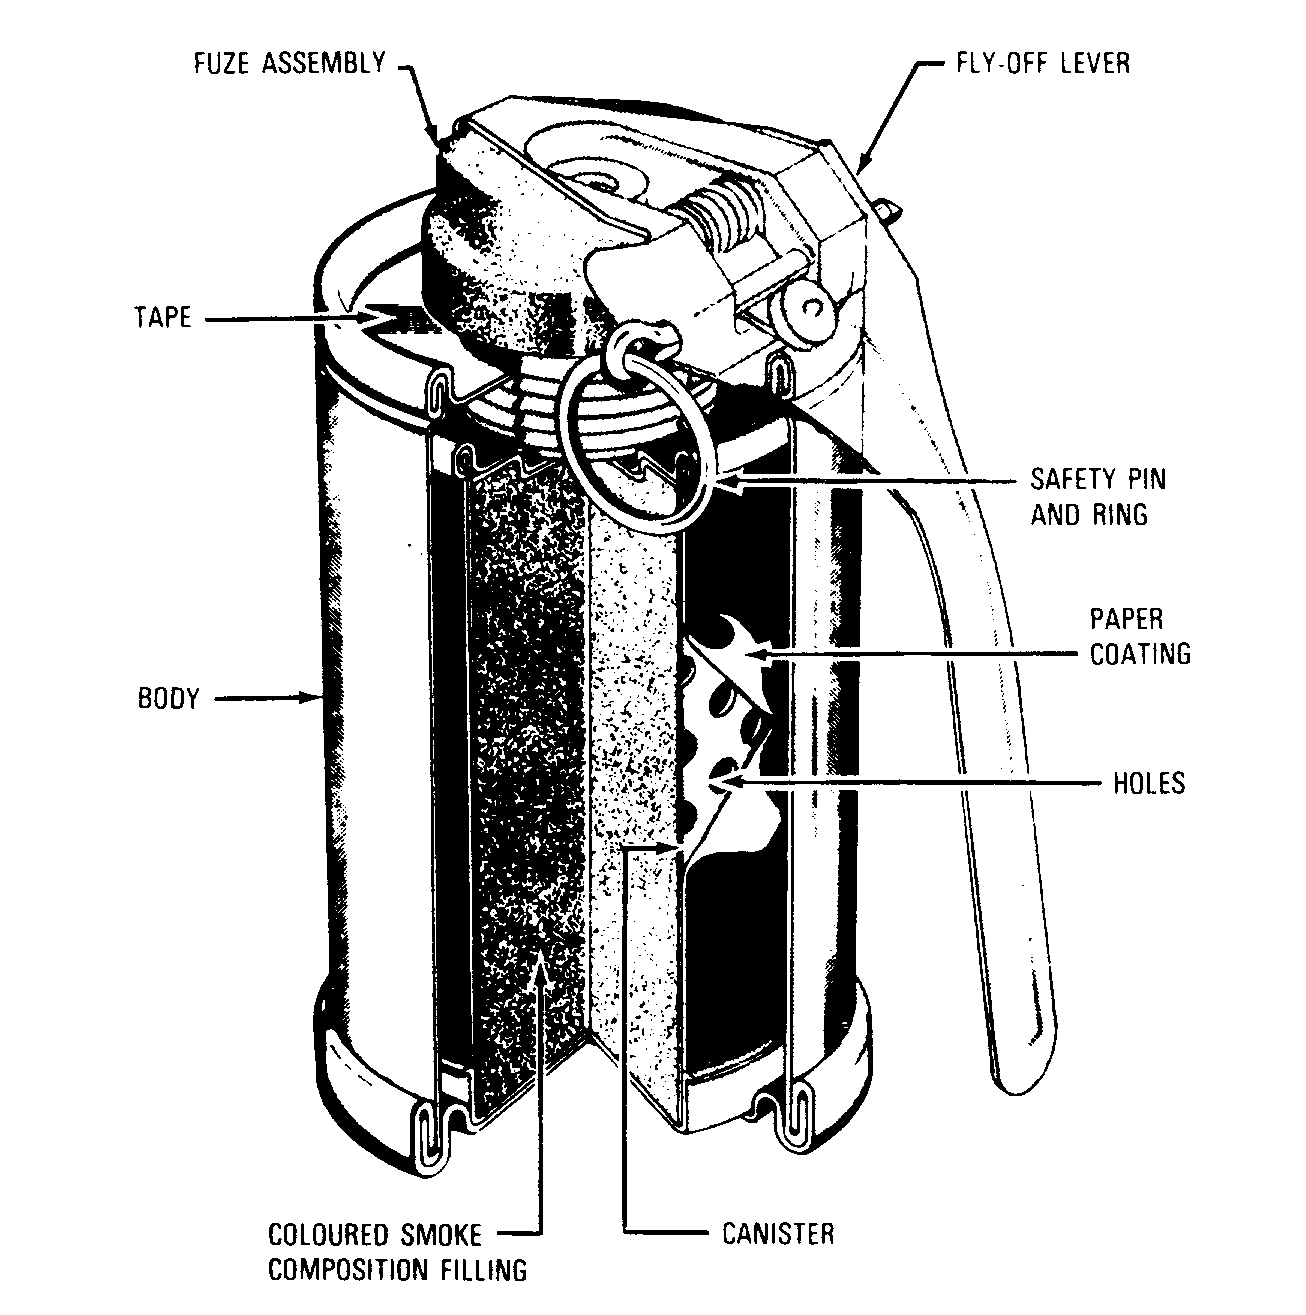 Hand Grenade Fuse Assembly